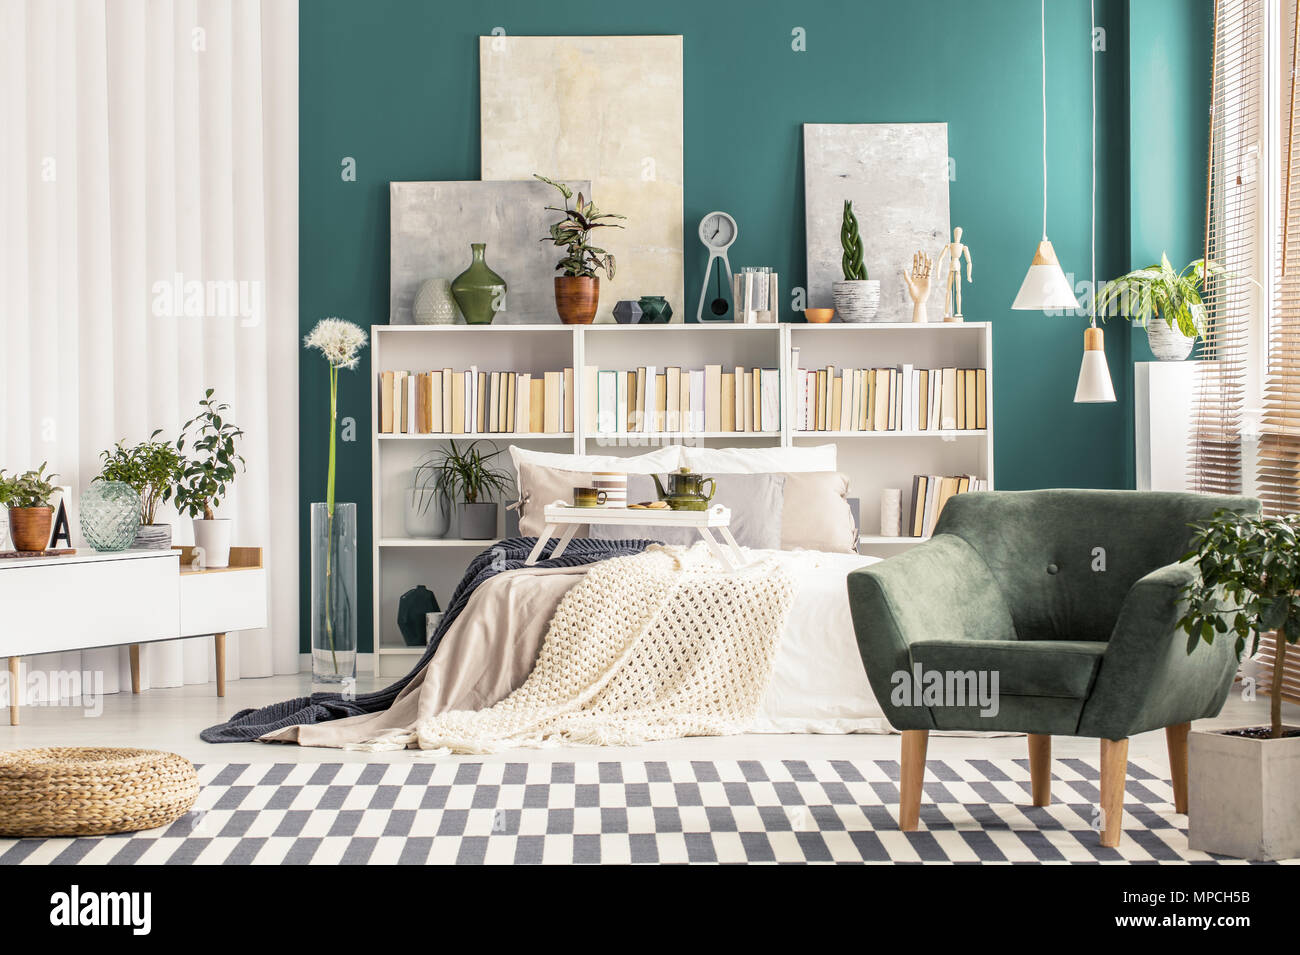 Cozy Bedroom Interior With White, Scandinavian Style Furniture And  Turquoise Green Wall